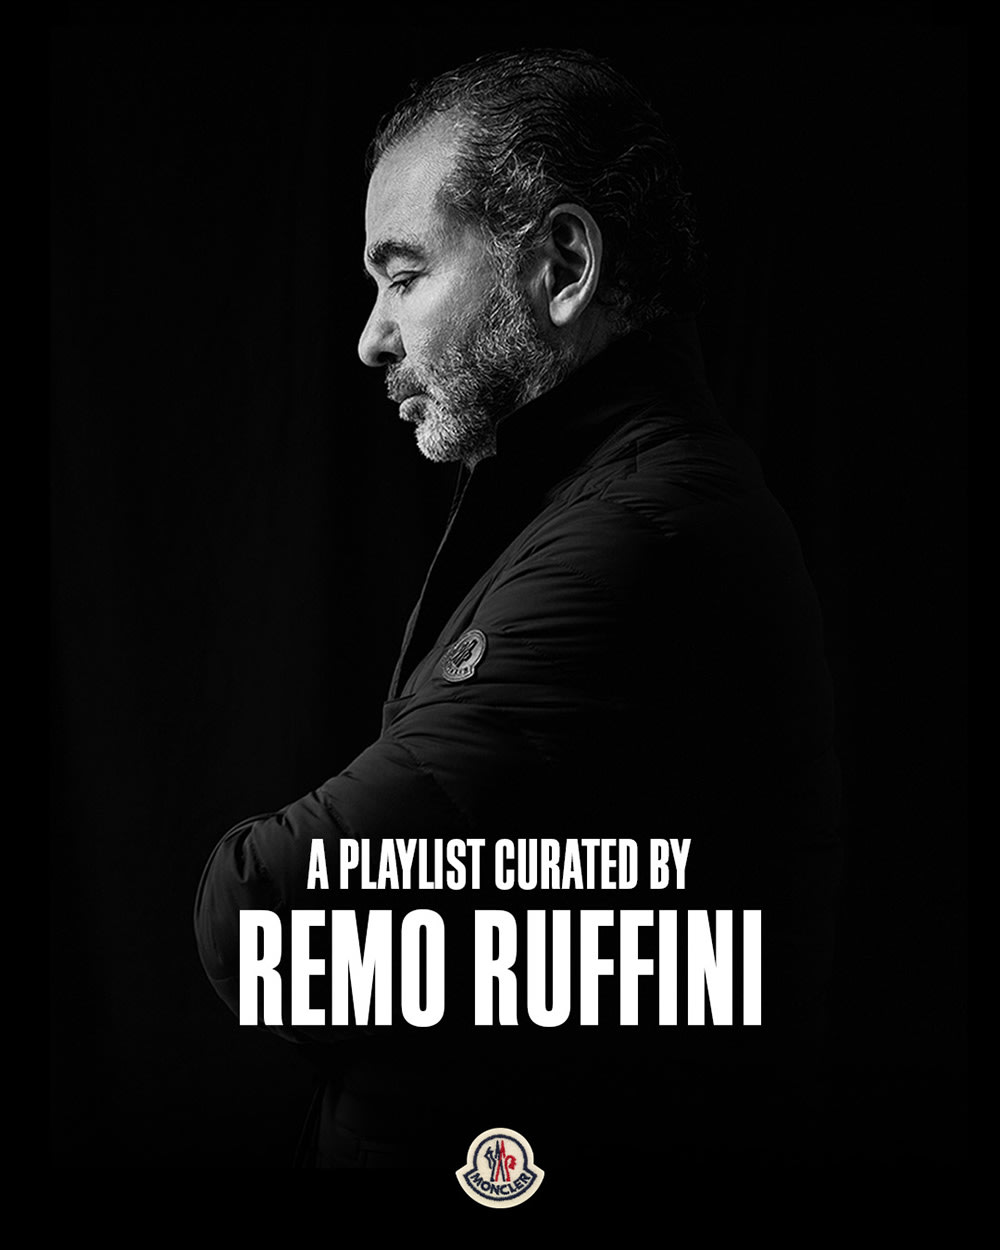 Warmly Moncler: A Spotify Playlist Curated by Remo Ruffini